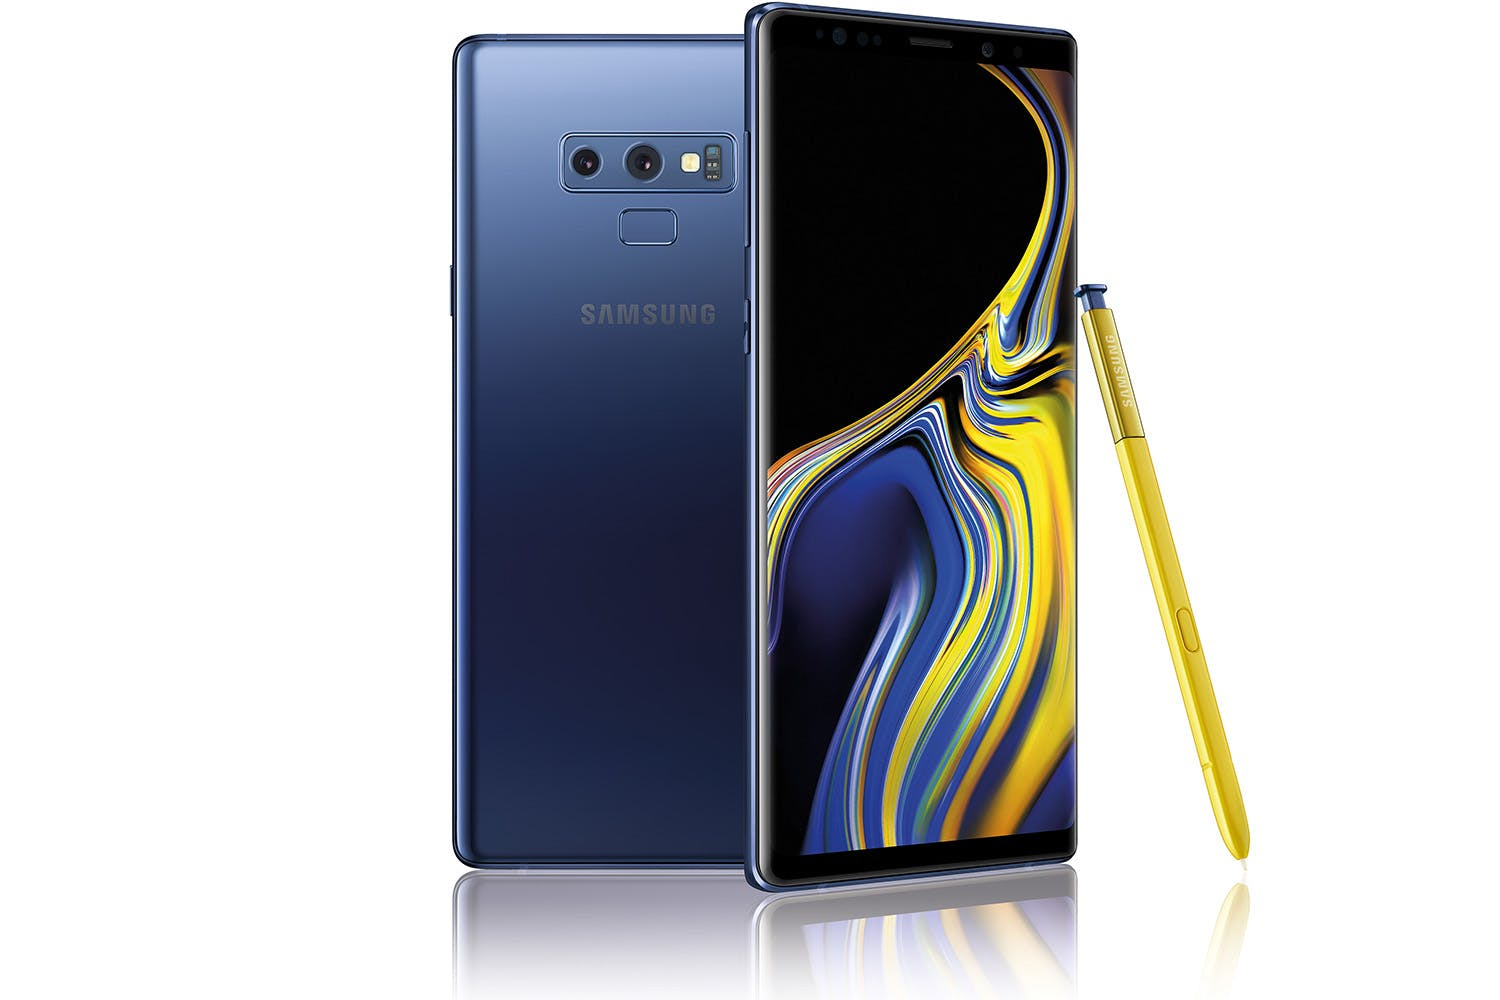 Samsung Galaxy Note 9 Black Friday 2018